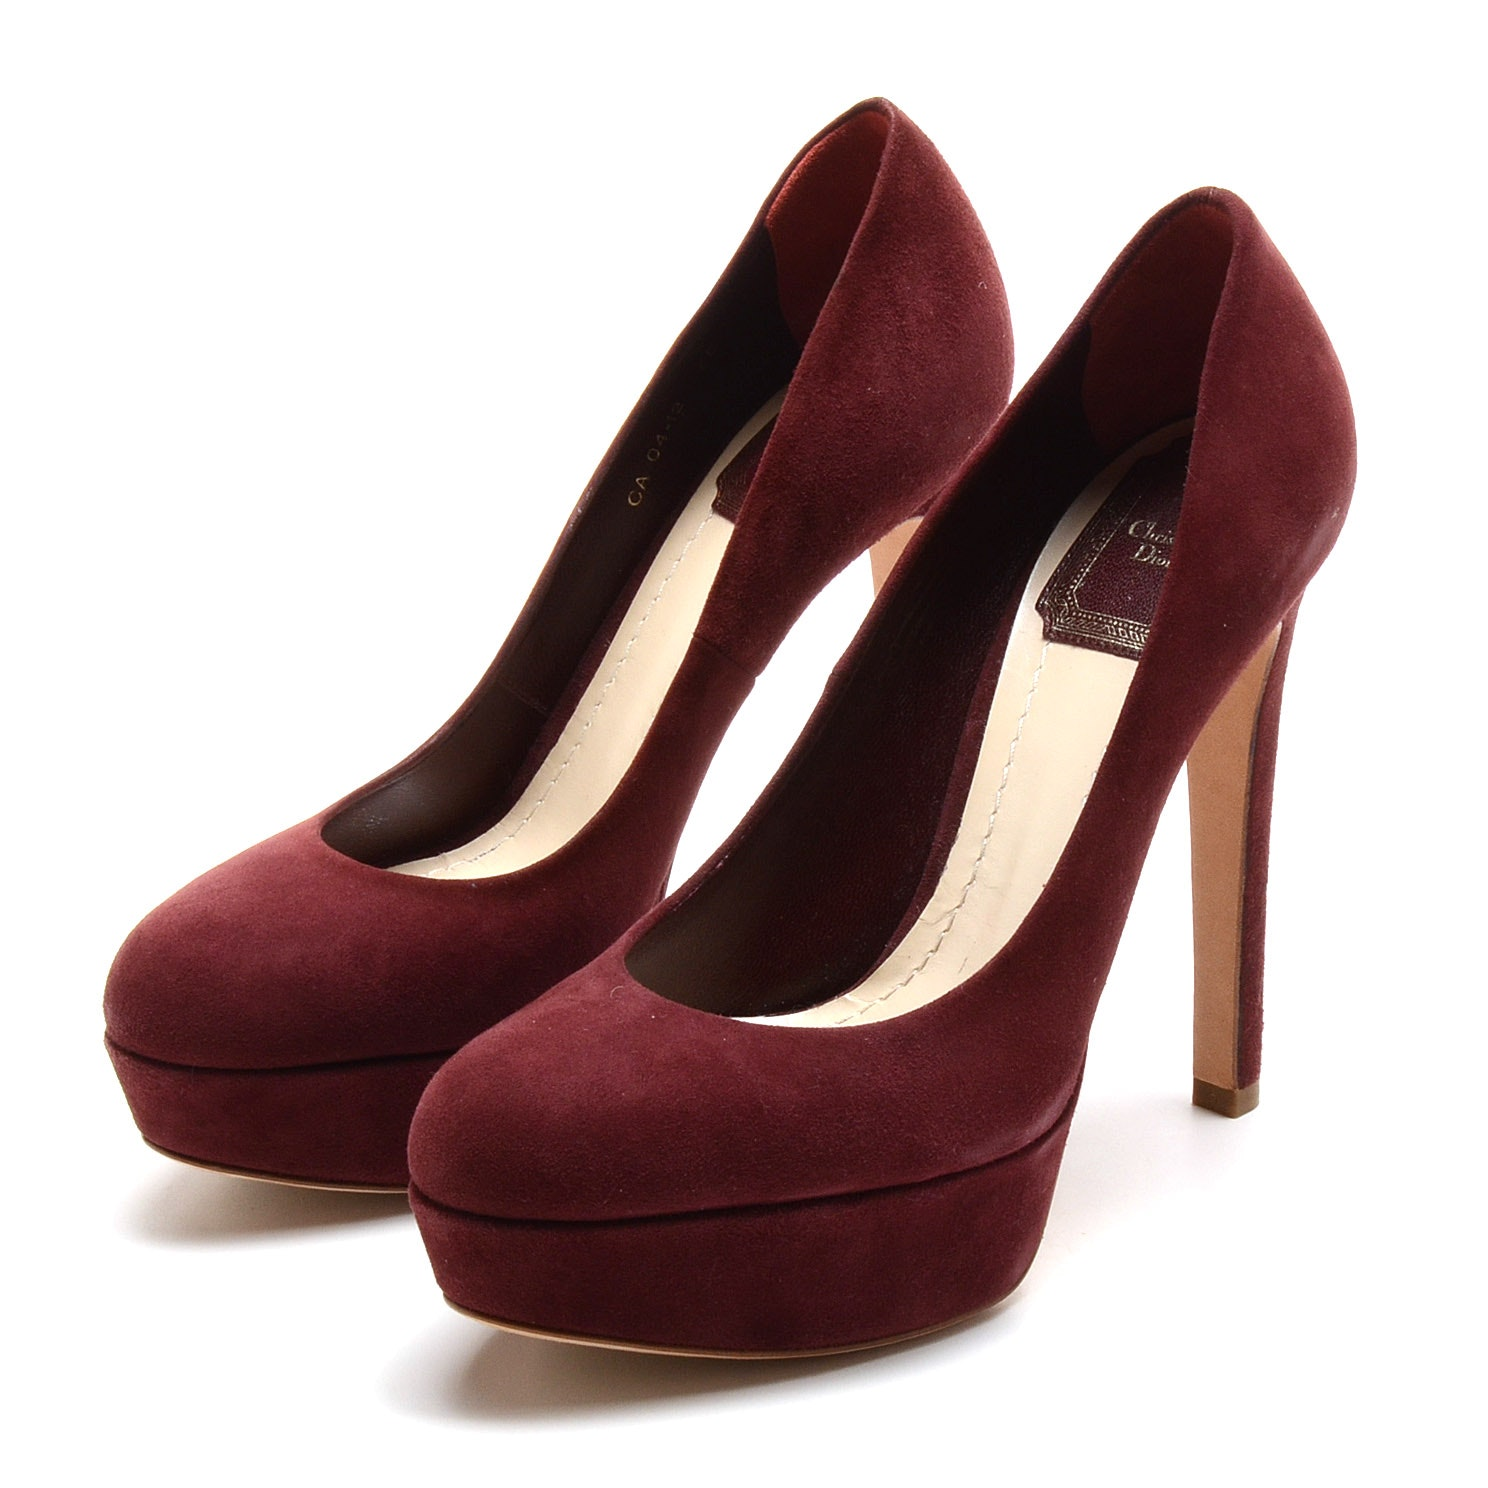 Christian Dior Cabernet Suede Leather Platform Dress Pumps